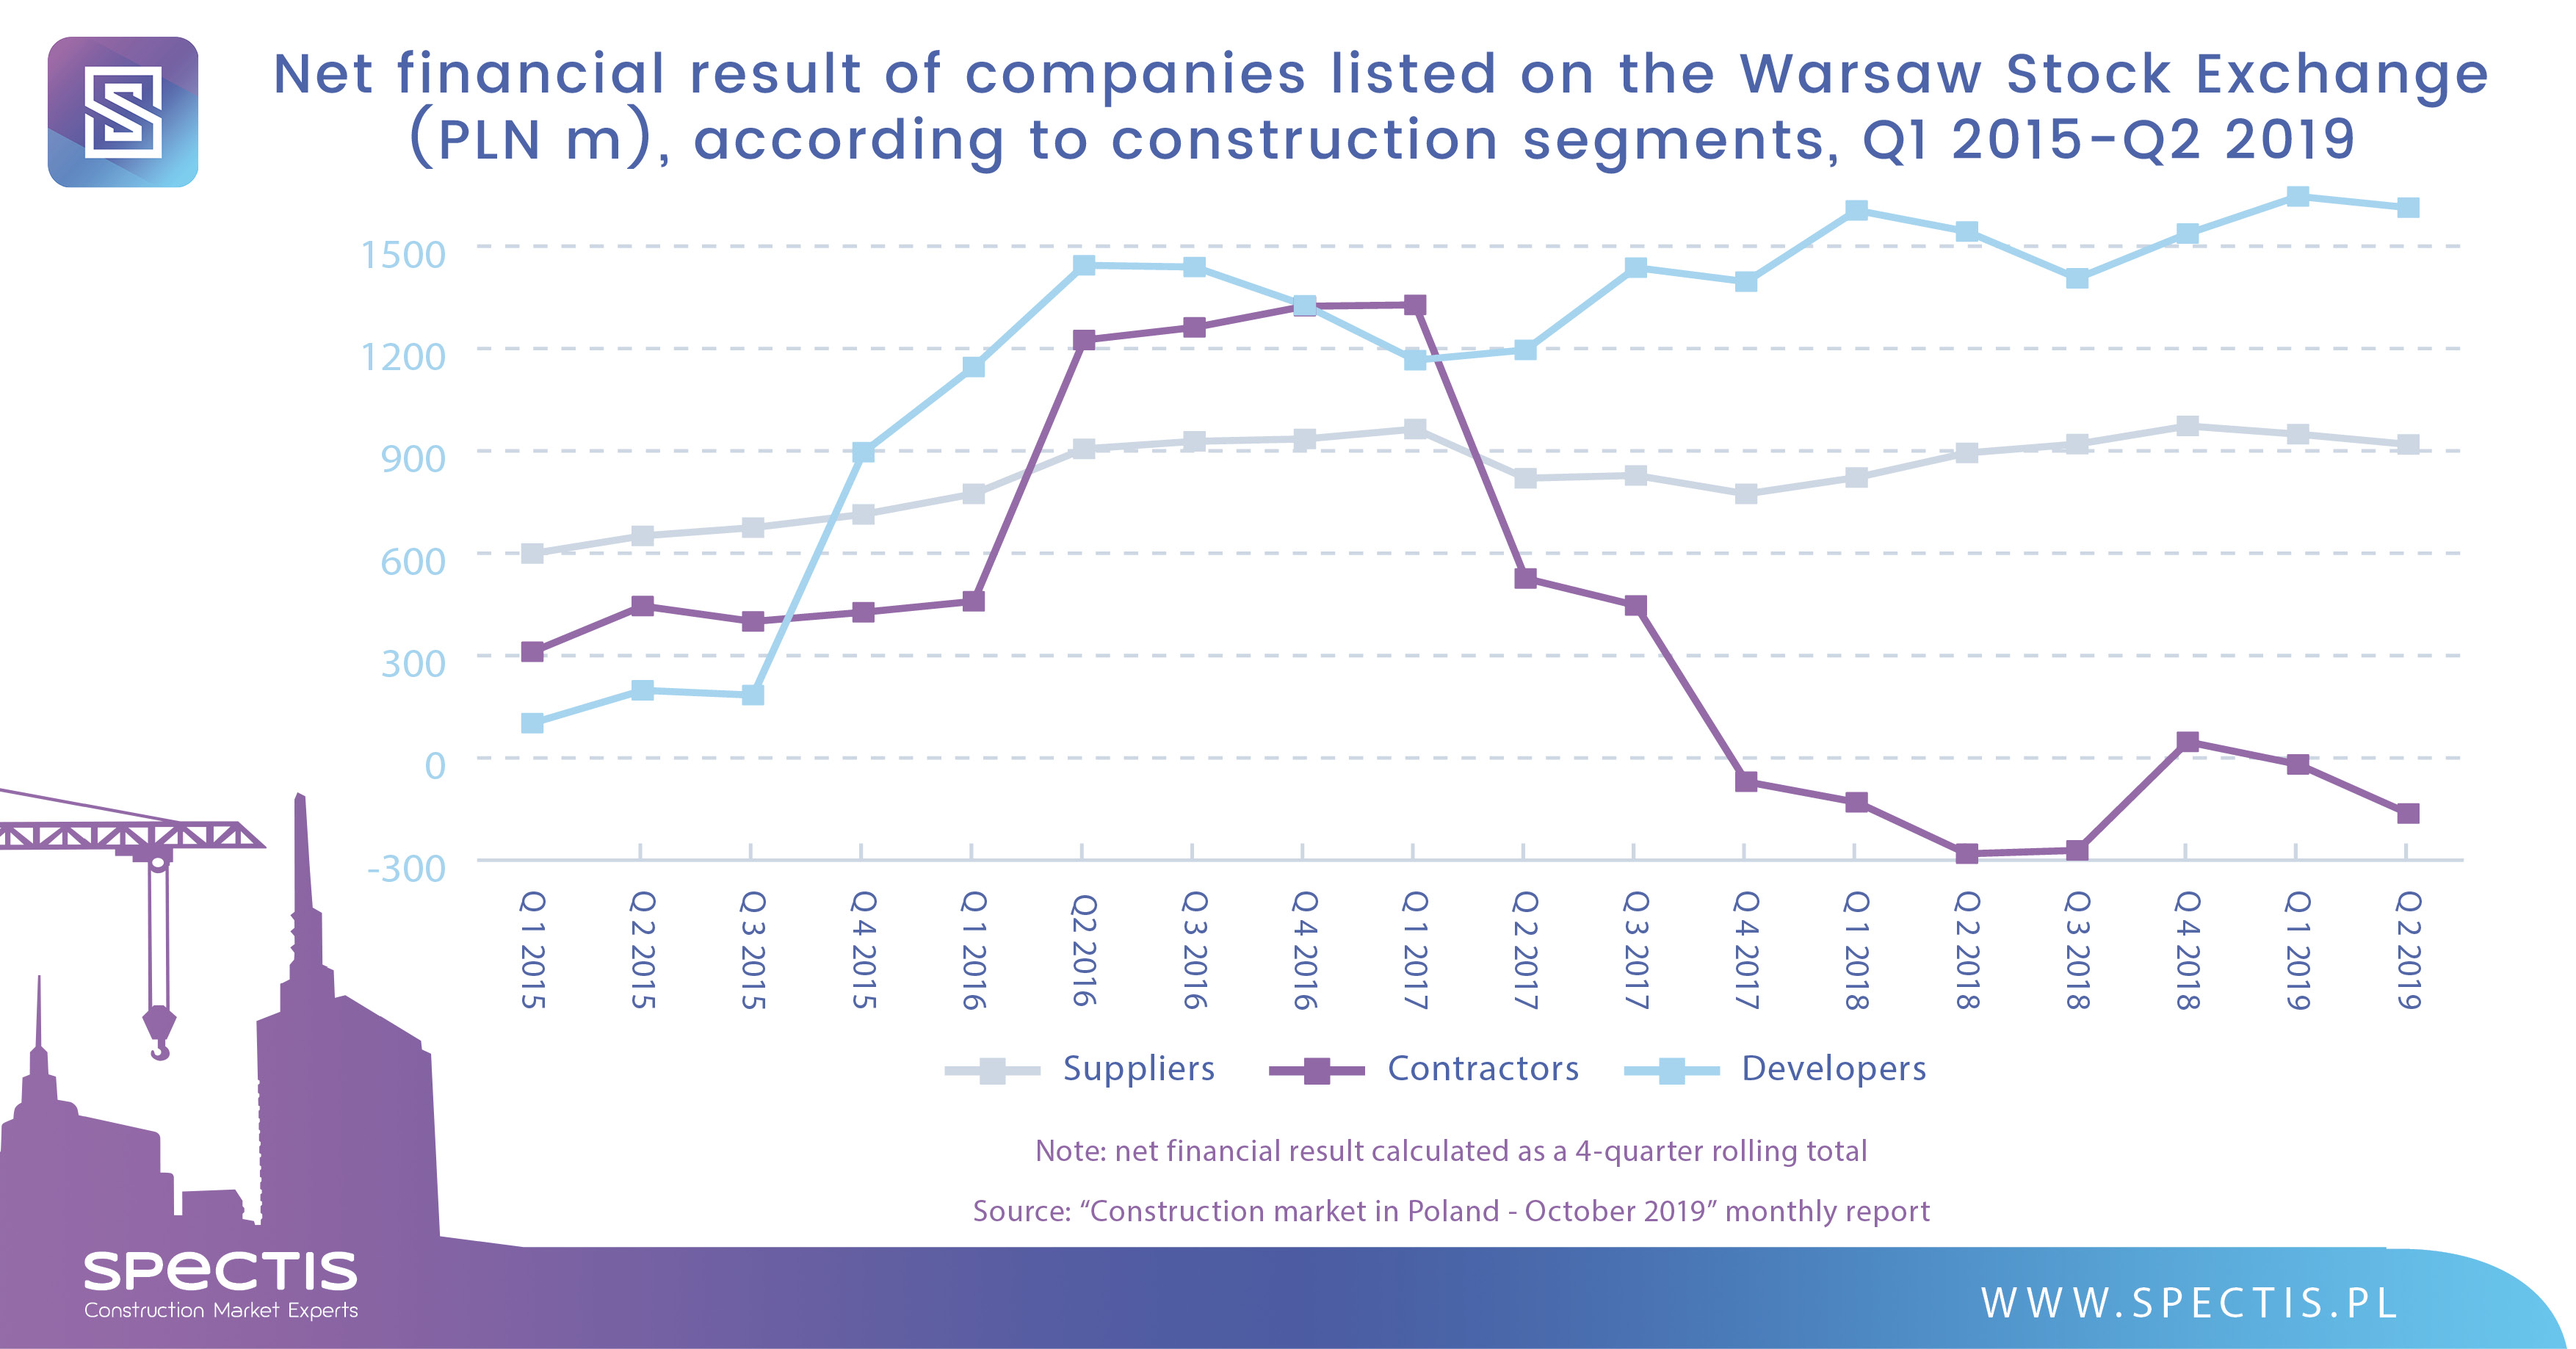 WSE-listed construction companies report negative profitability in Q2 2019